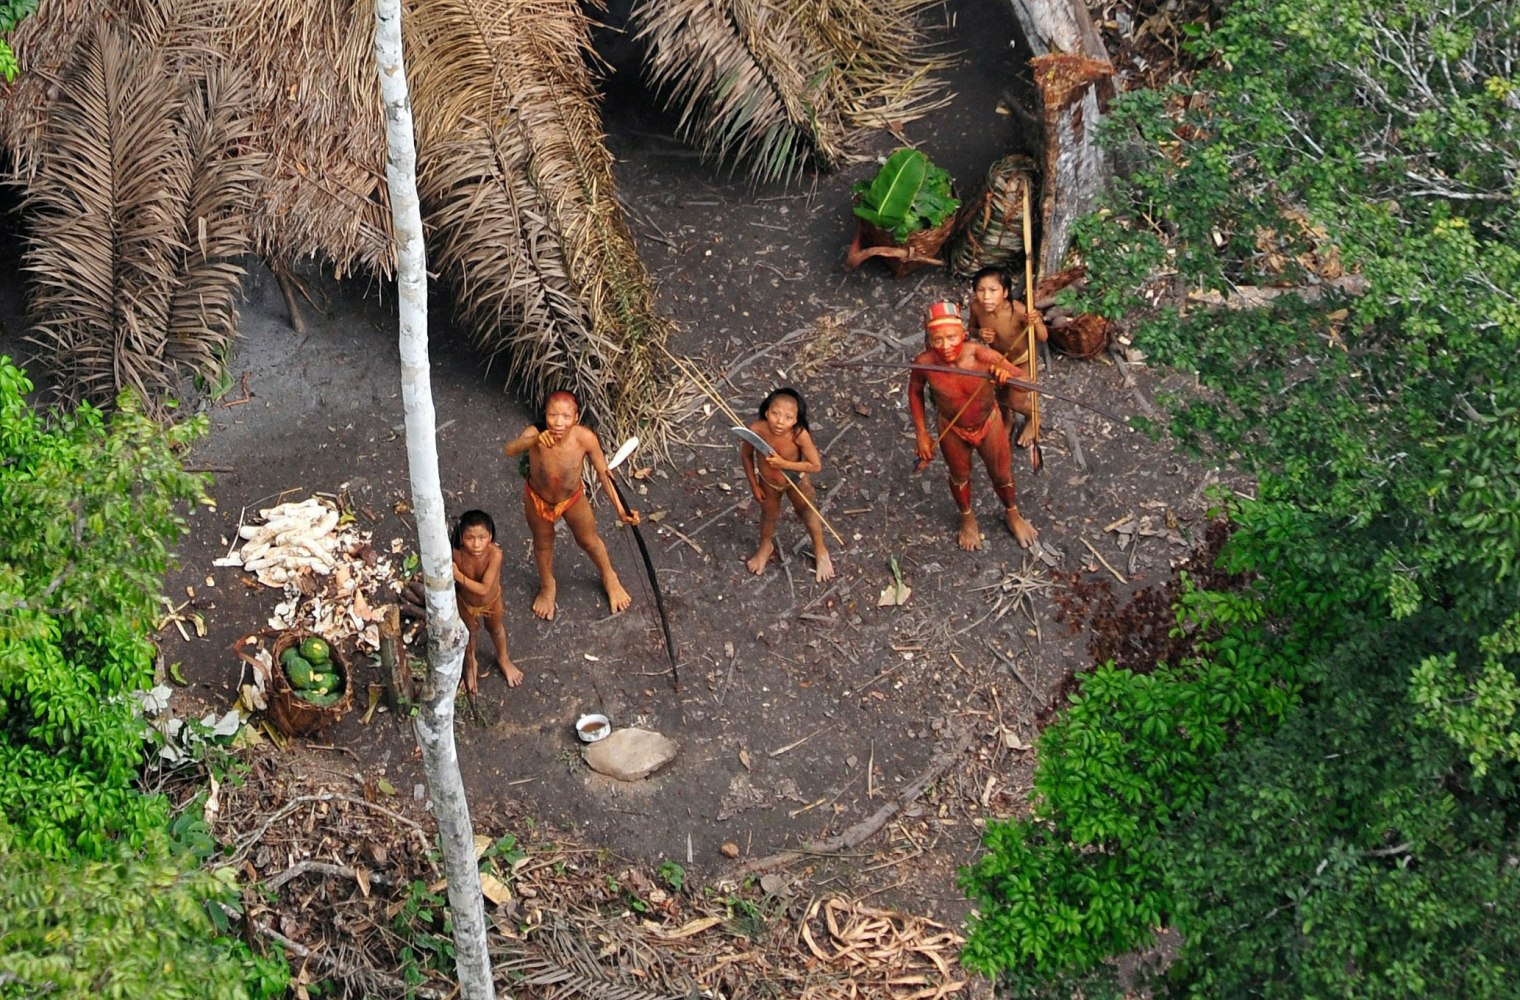 Uncontacted Amazon tribe 'killed and chopped up by gold miners'